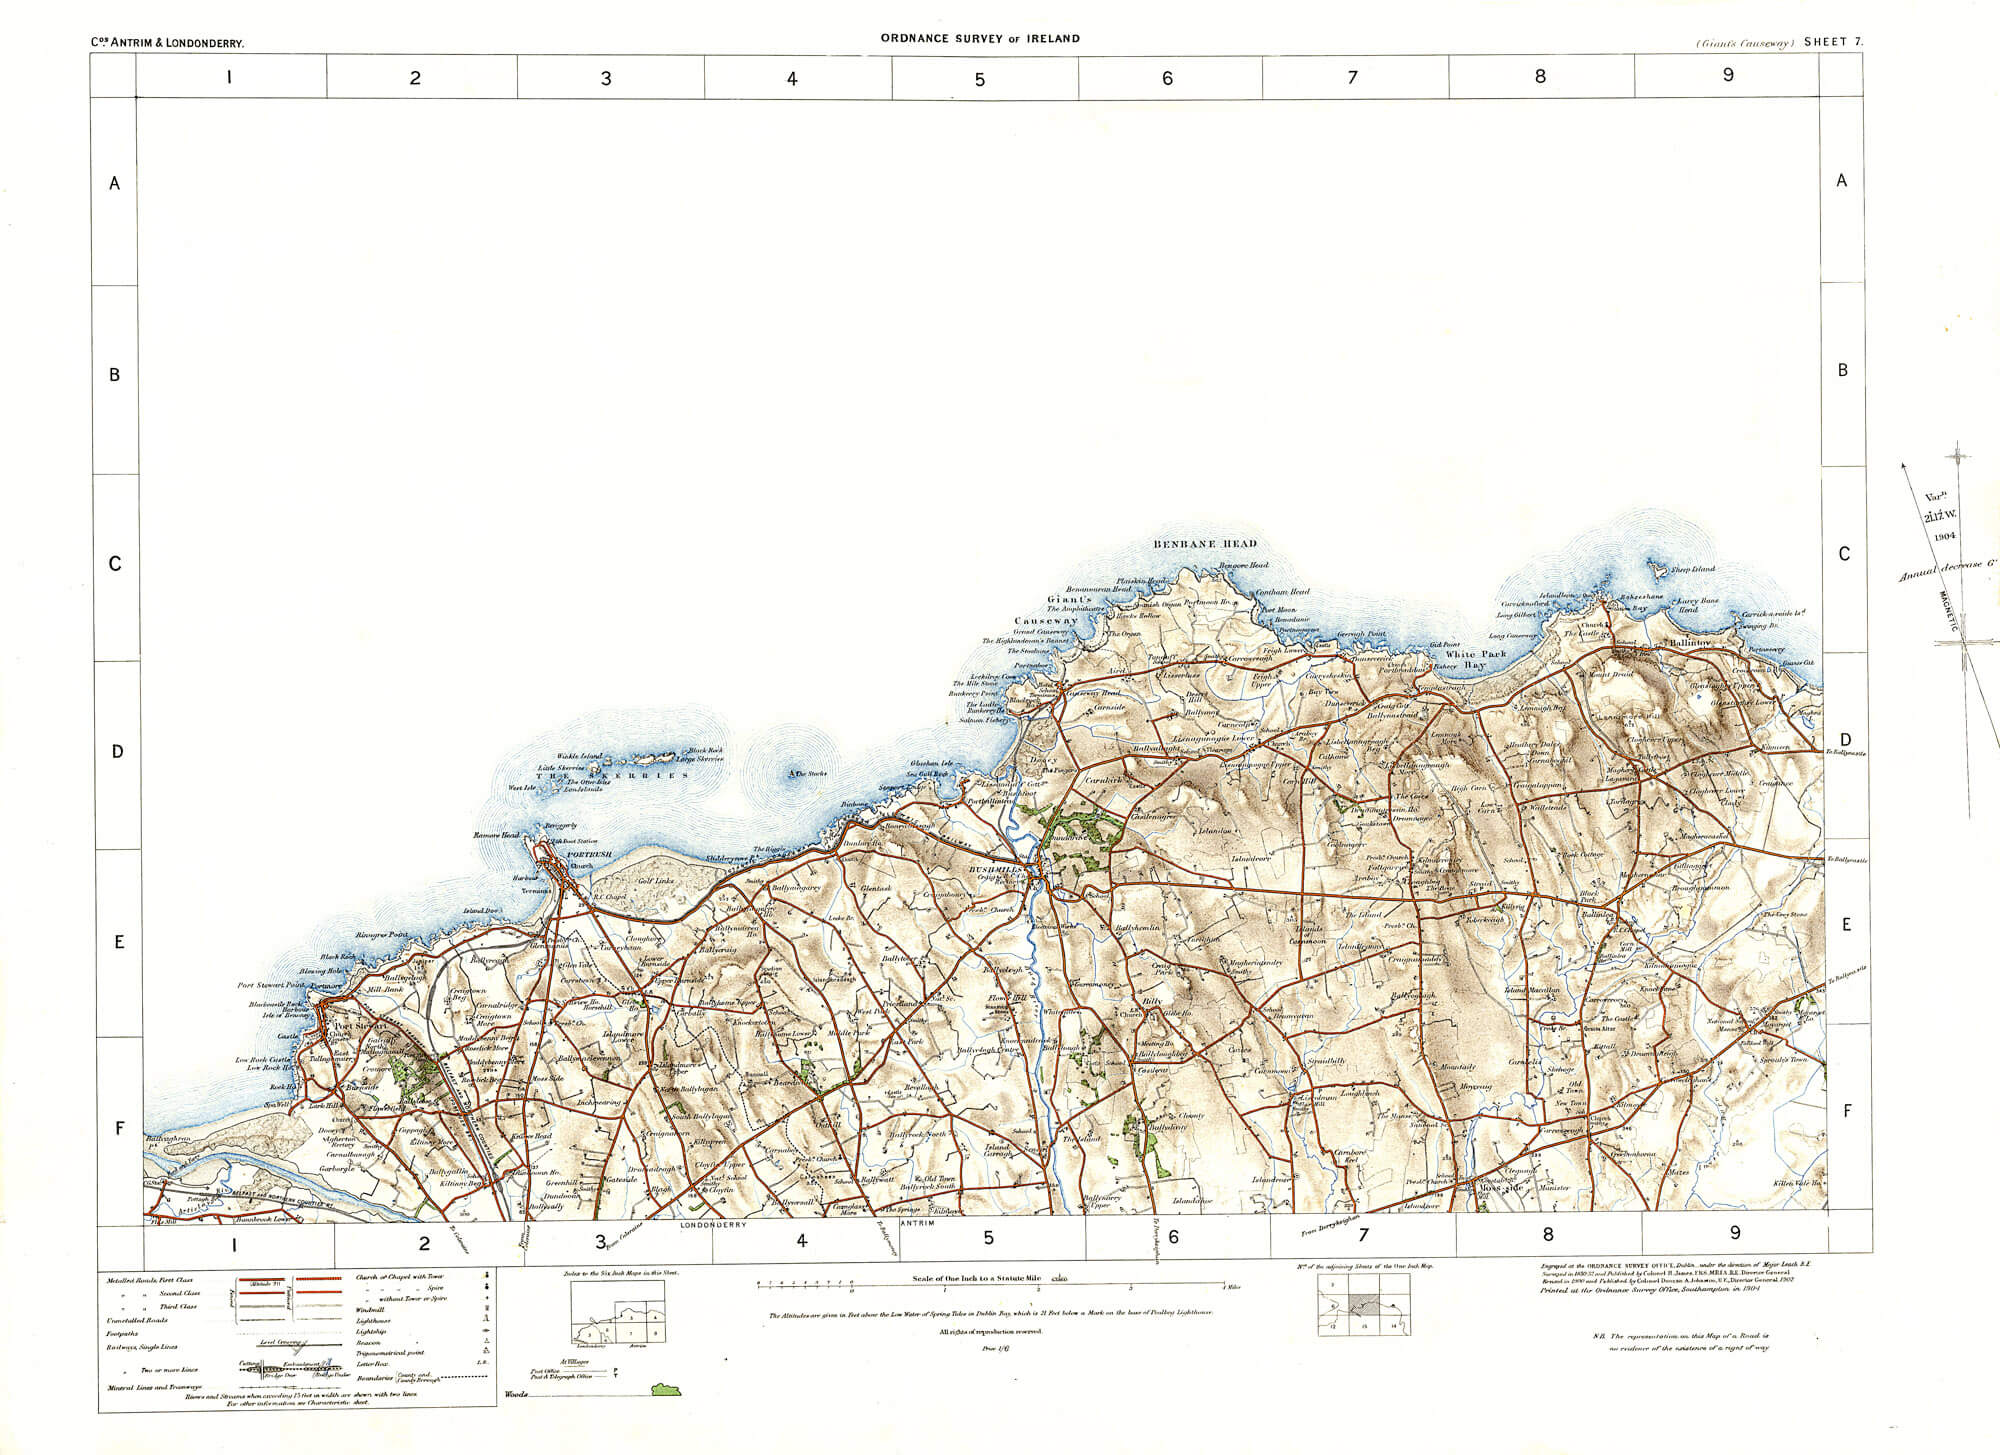 Map Of Ireland Giants Causeway.Ireland 1in Topographic Col Abl 1907 Sheets 1 To 50 L Brown Collection